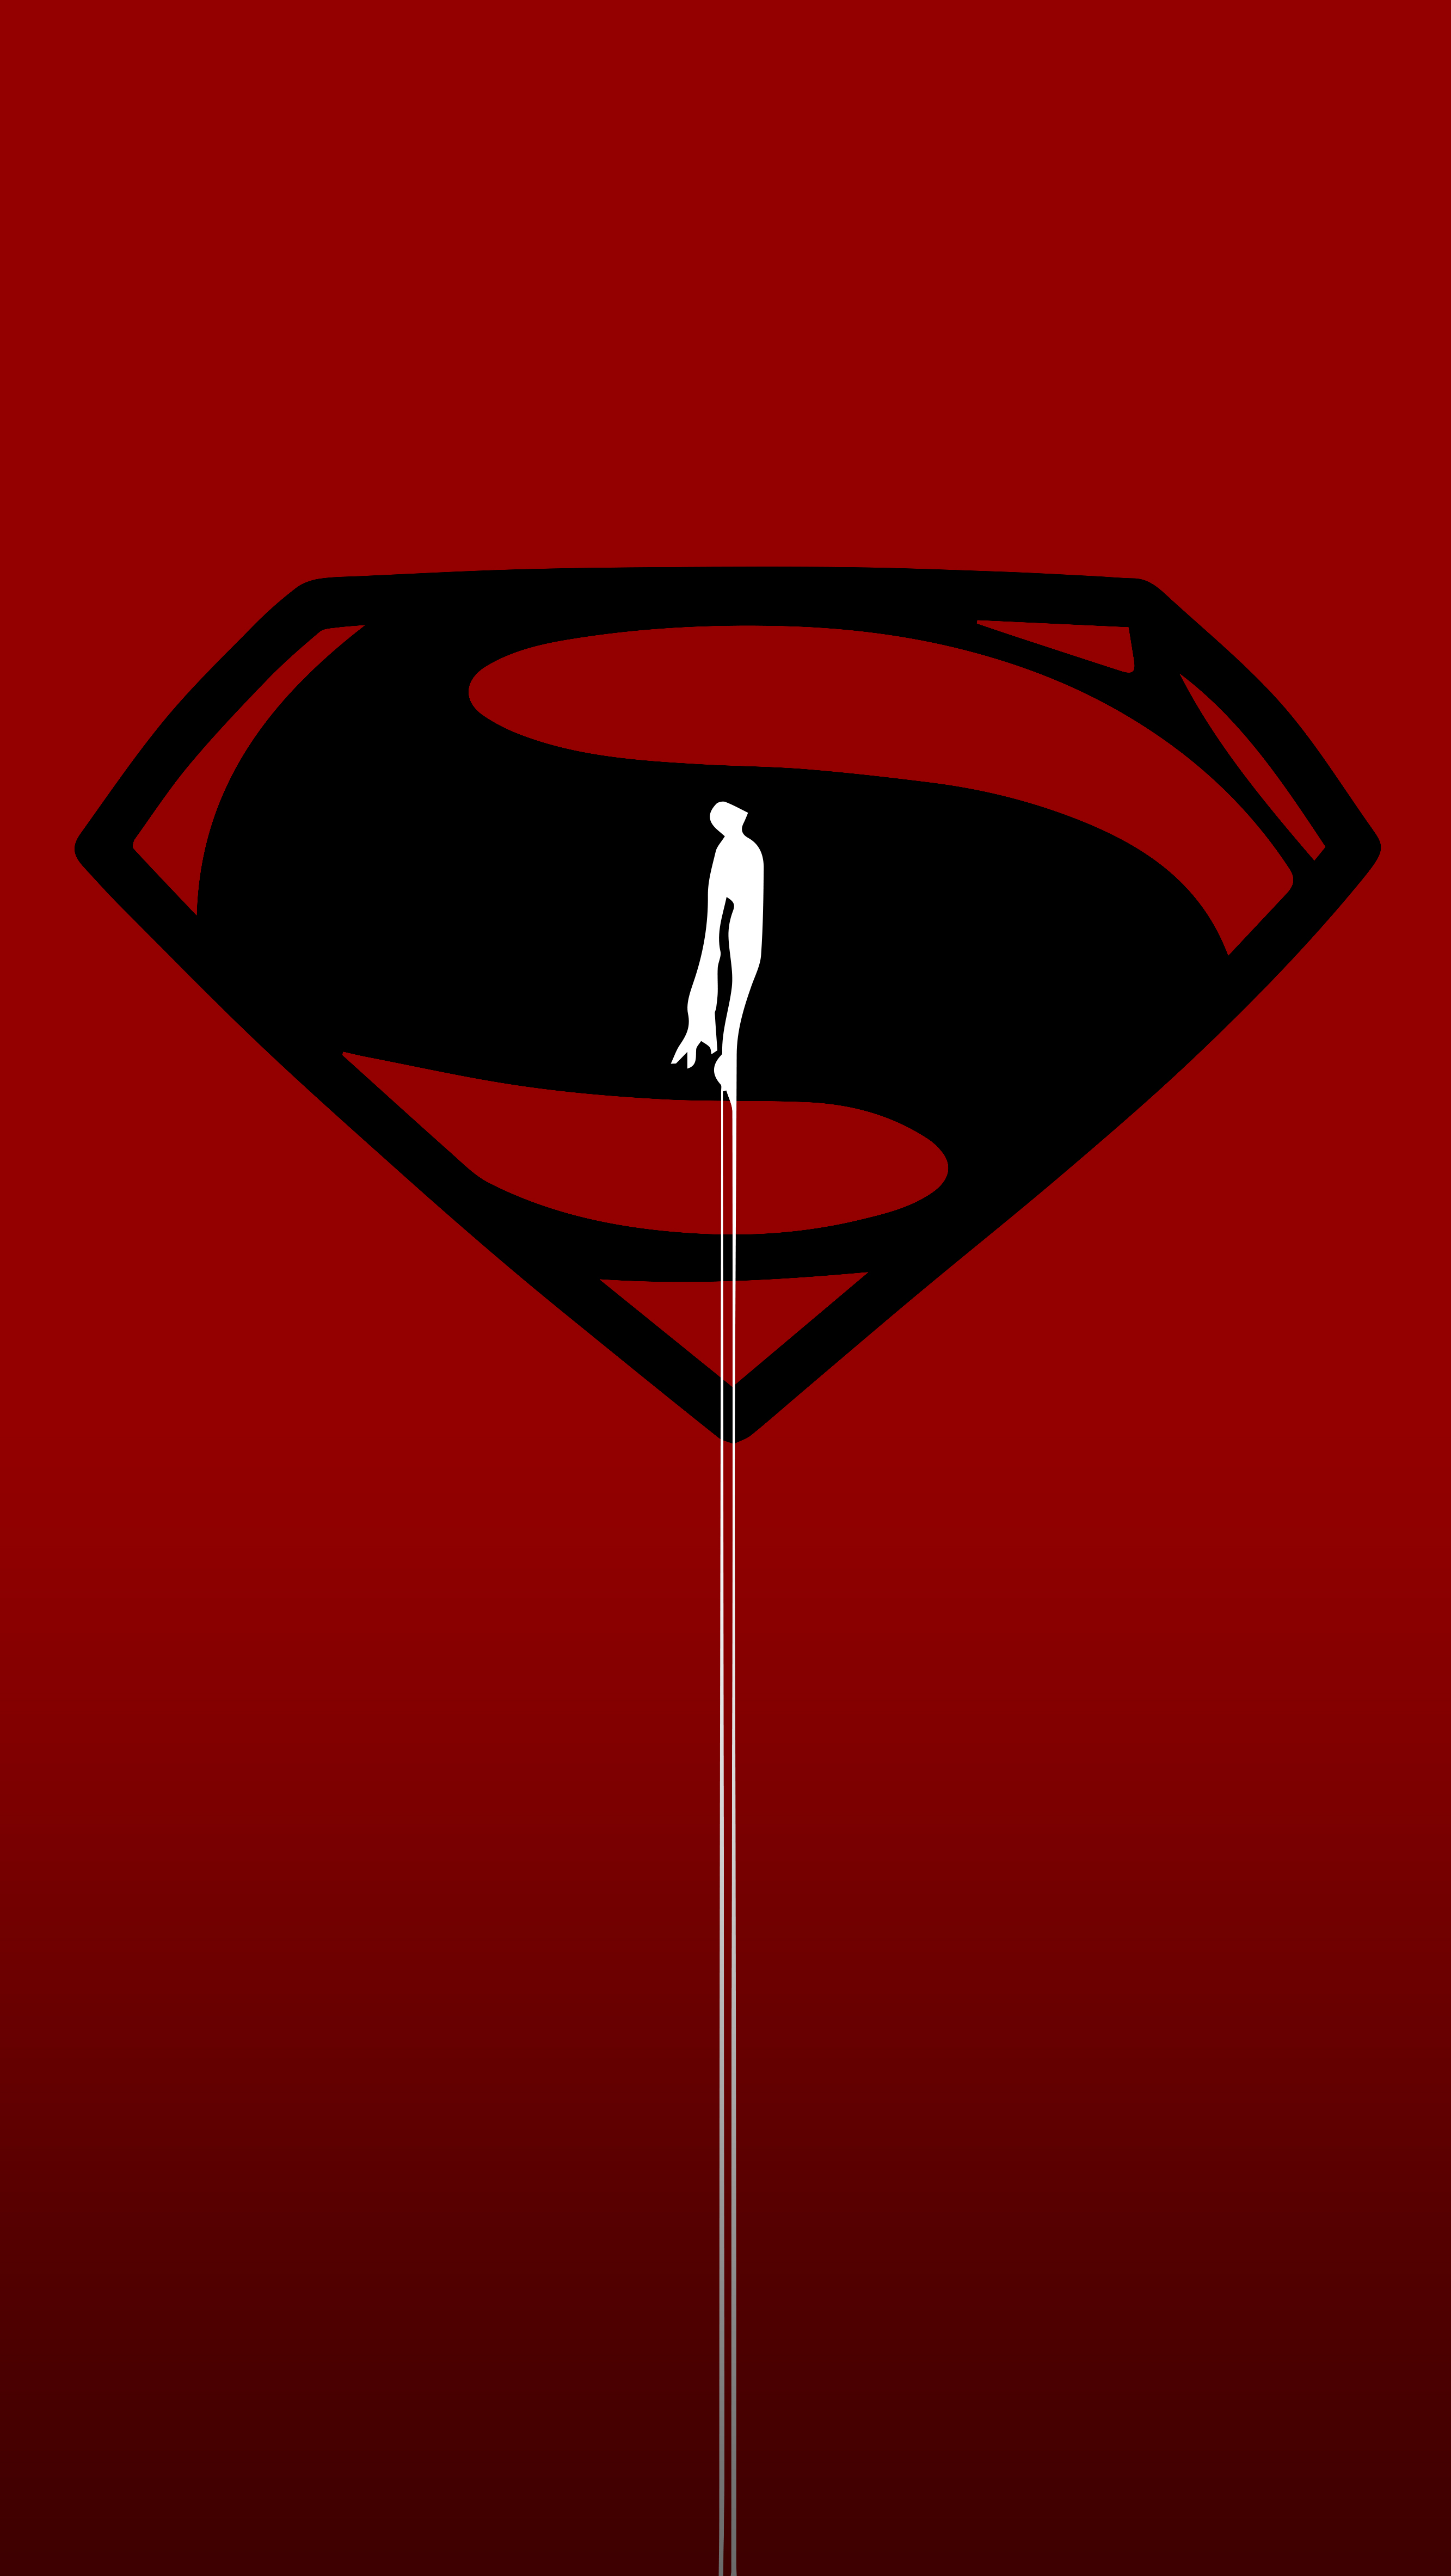 Man Of Steel Iphone 5 Wallpaper Version 3 By Blessed1beloved1 On